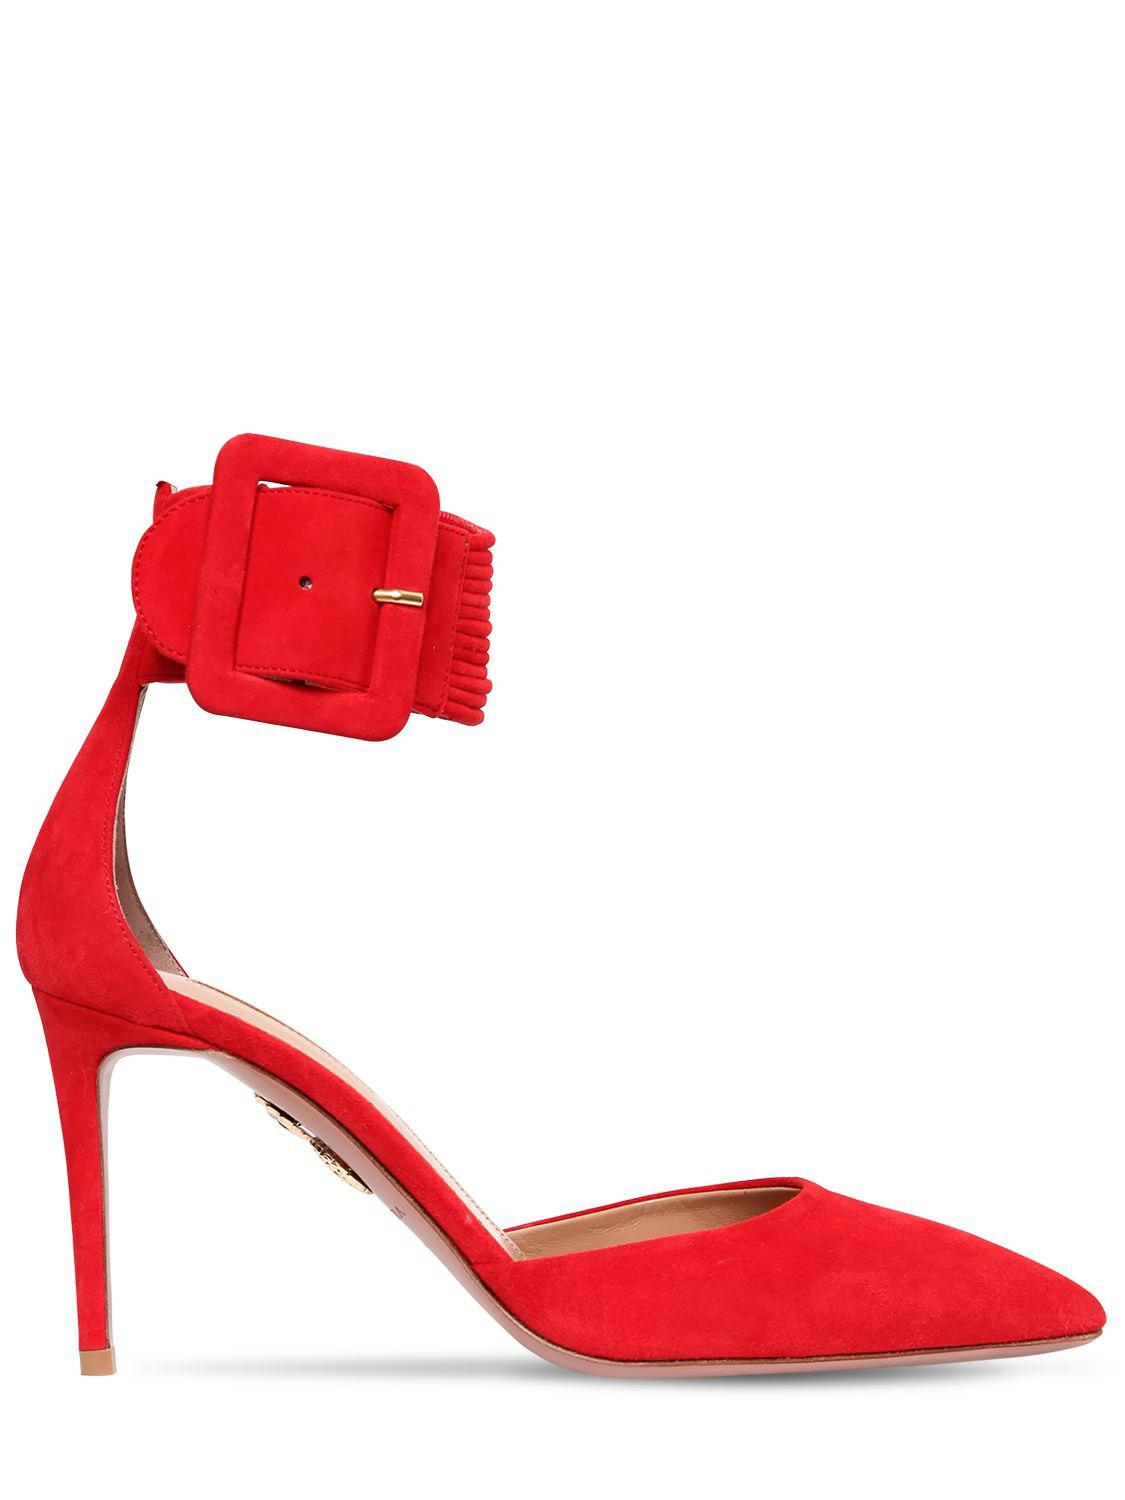 3d6b6da7ddf1 Lyst - Aquazzura 85mm Casa Blanca Suede Pumps in Red - Save 40%